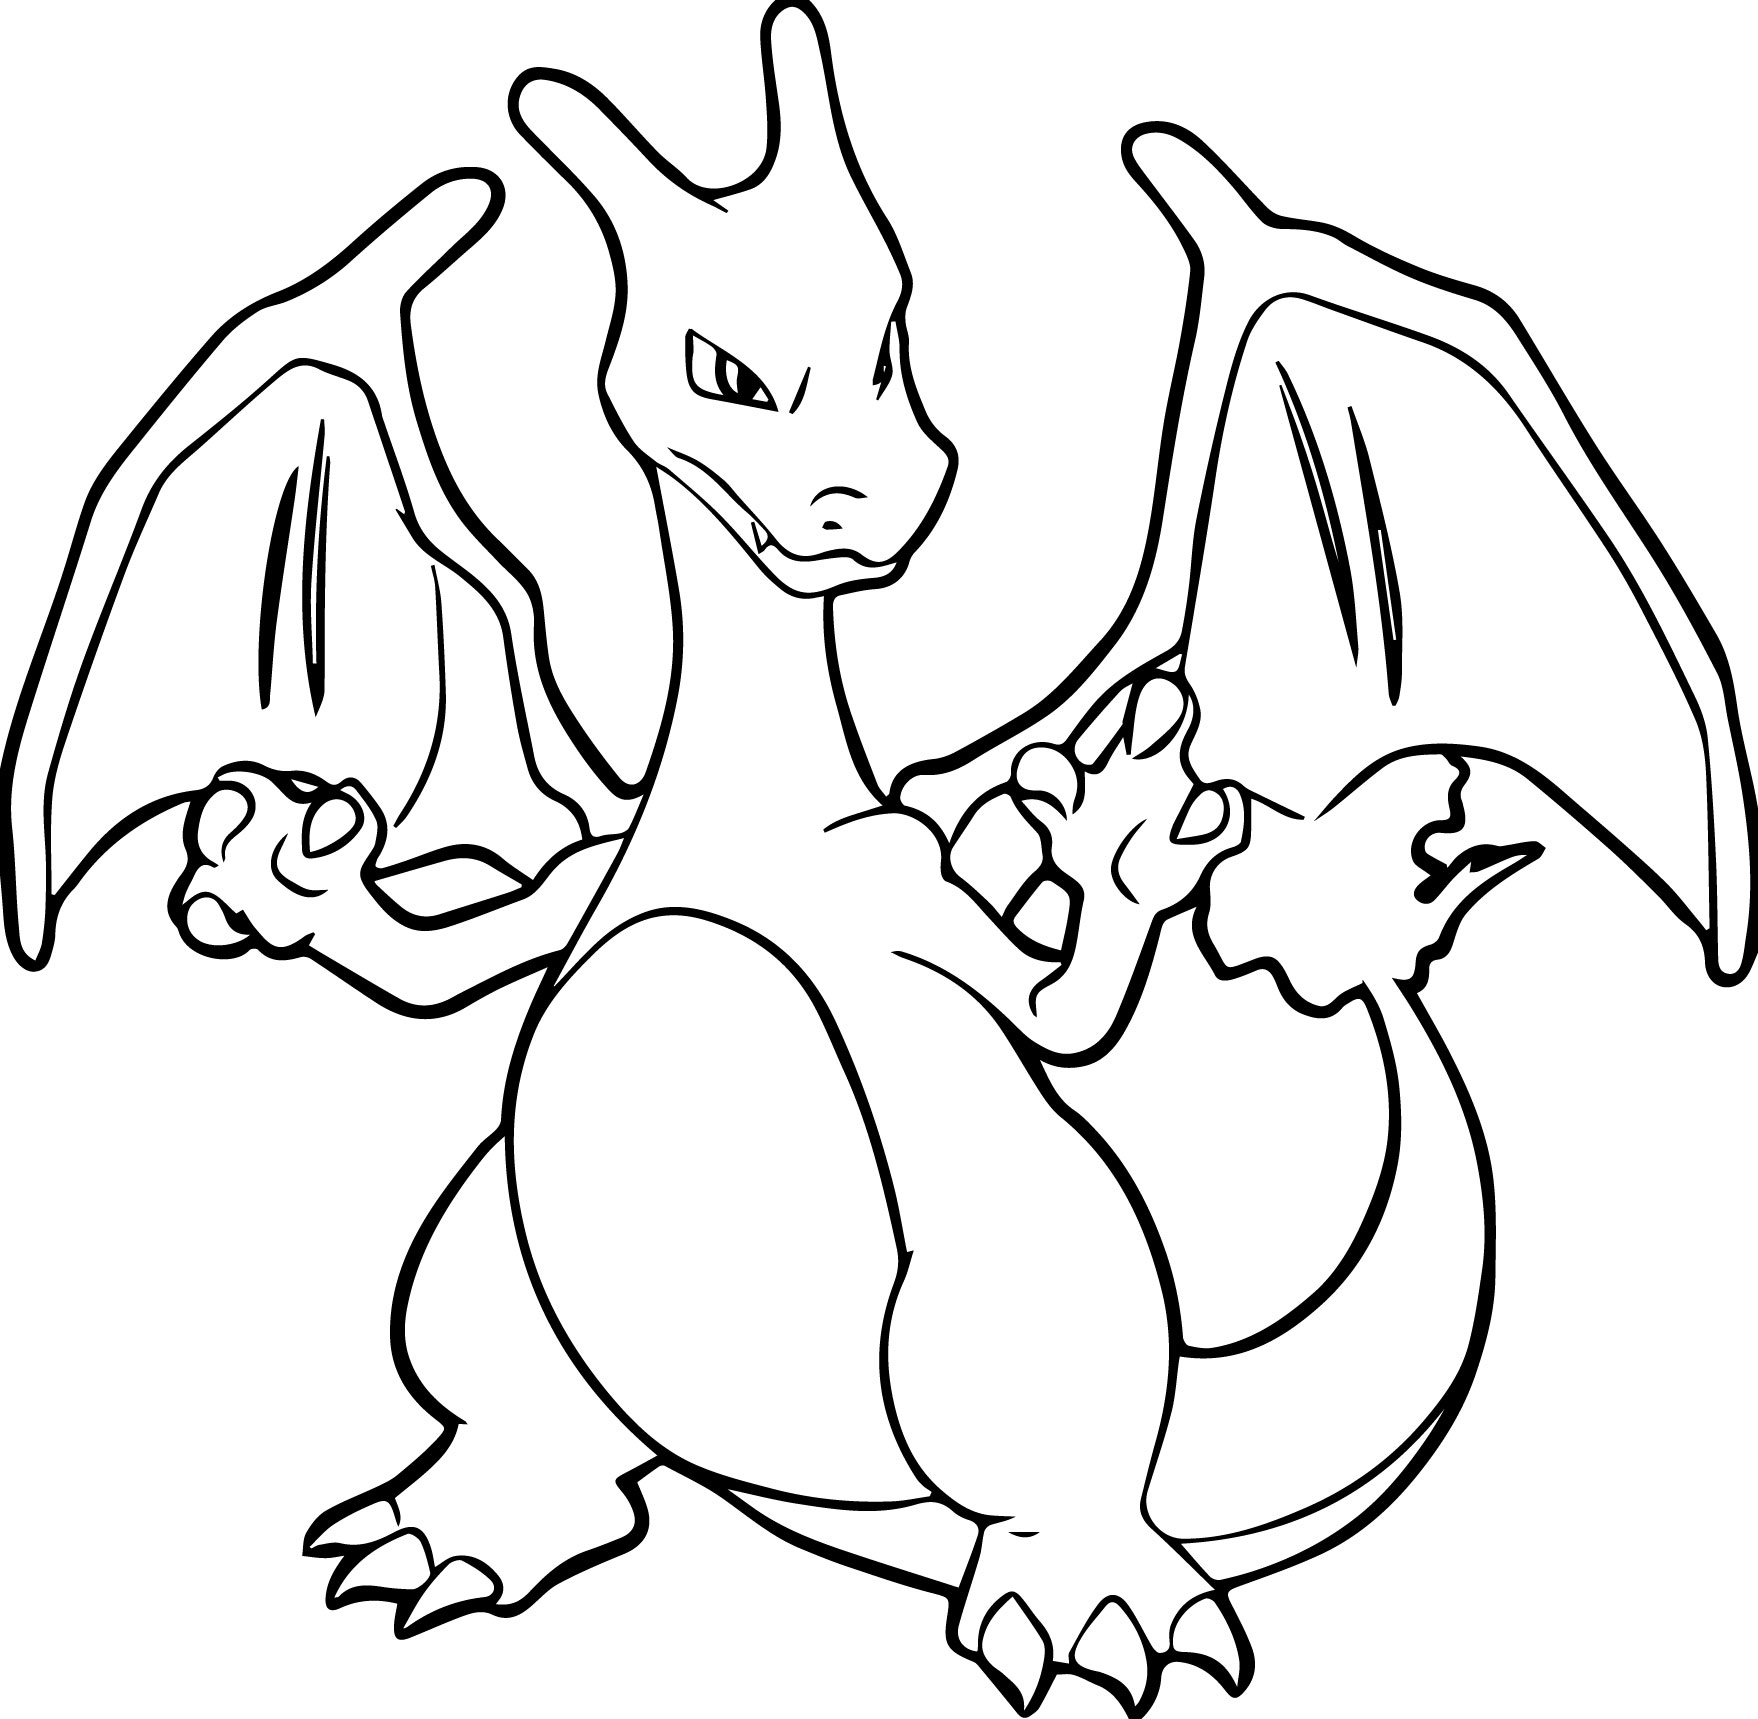 colouring pages pokemon black and white charizard coloring pages to download and print for free white pokemon black and colouring pages